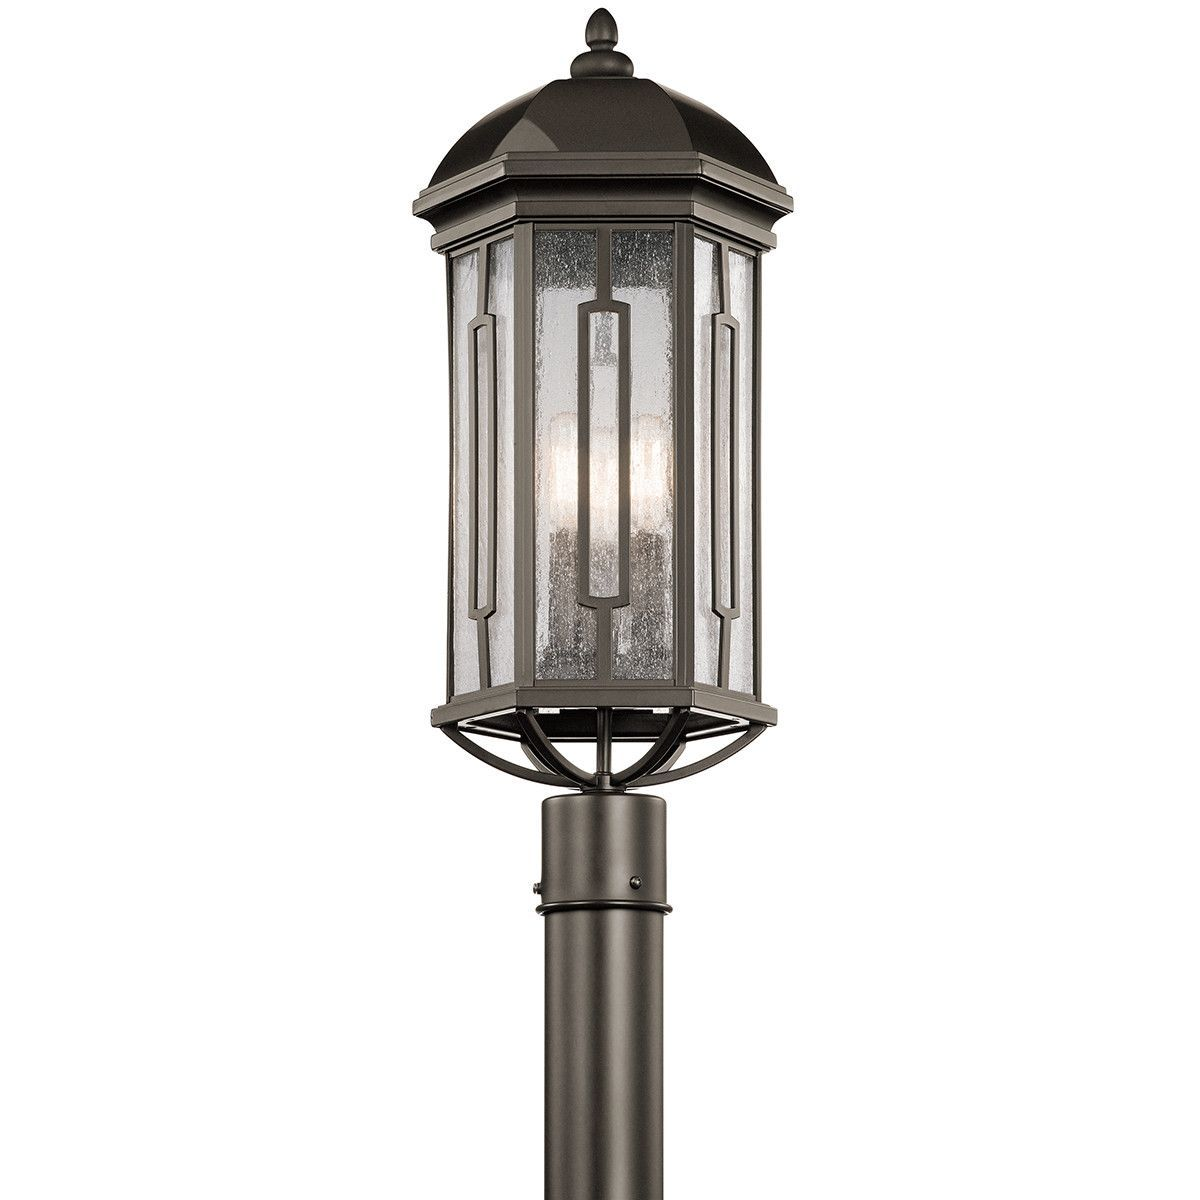 Galemore outdoor 3 light 23 post lantern set church outdoor shop kichler lighting galemore 3 light outdoor post mount at lowes canada find our selection of post mount lights at the lowest price guaranteed with aloadofball Choice Image